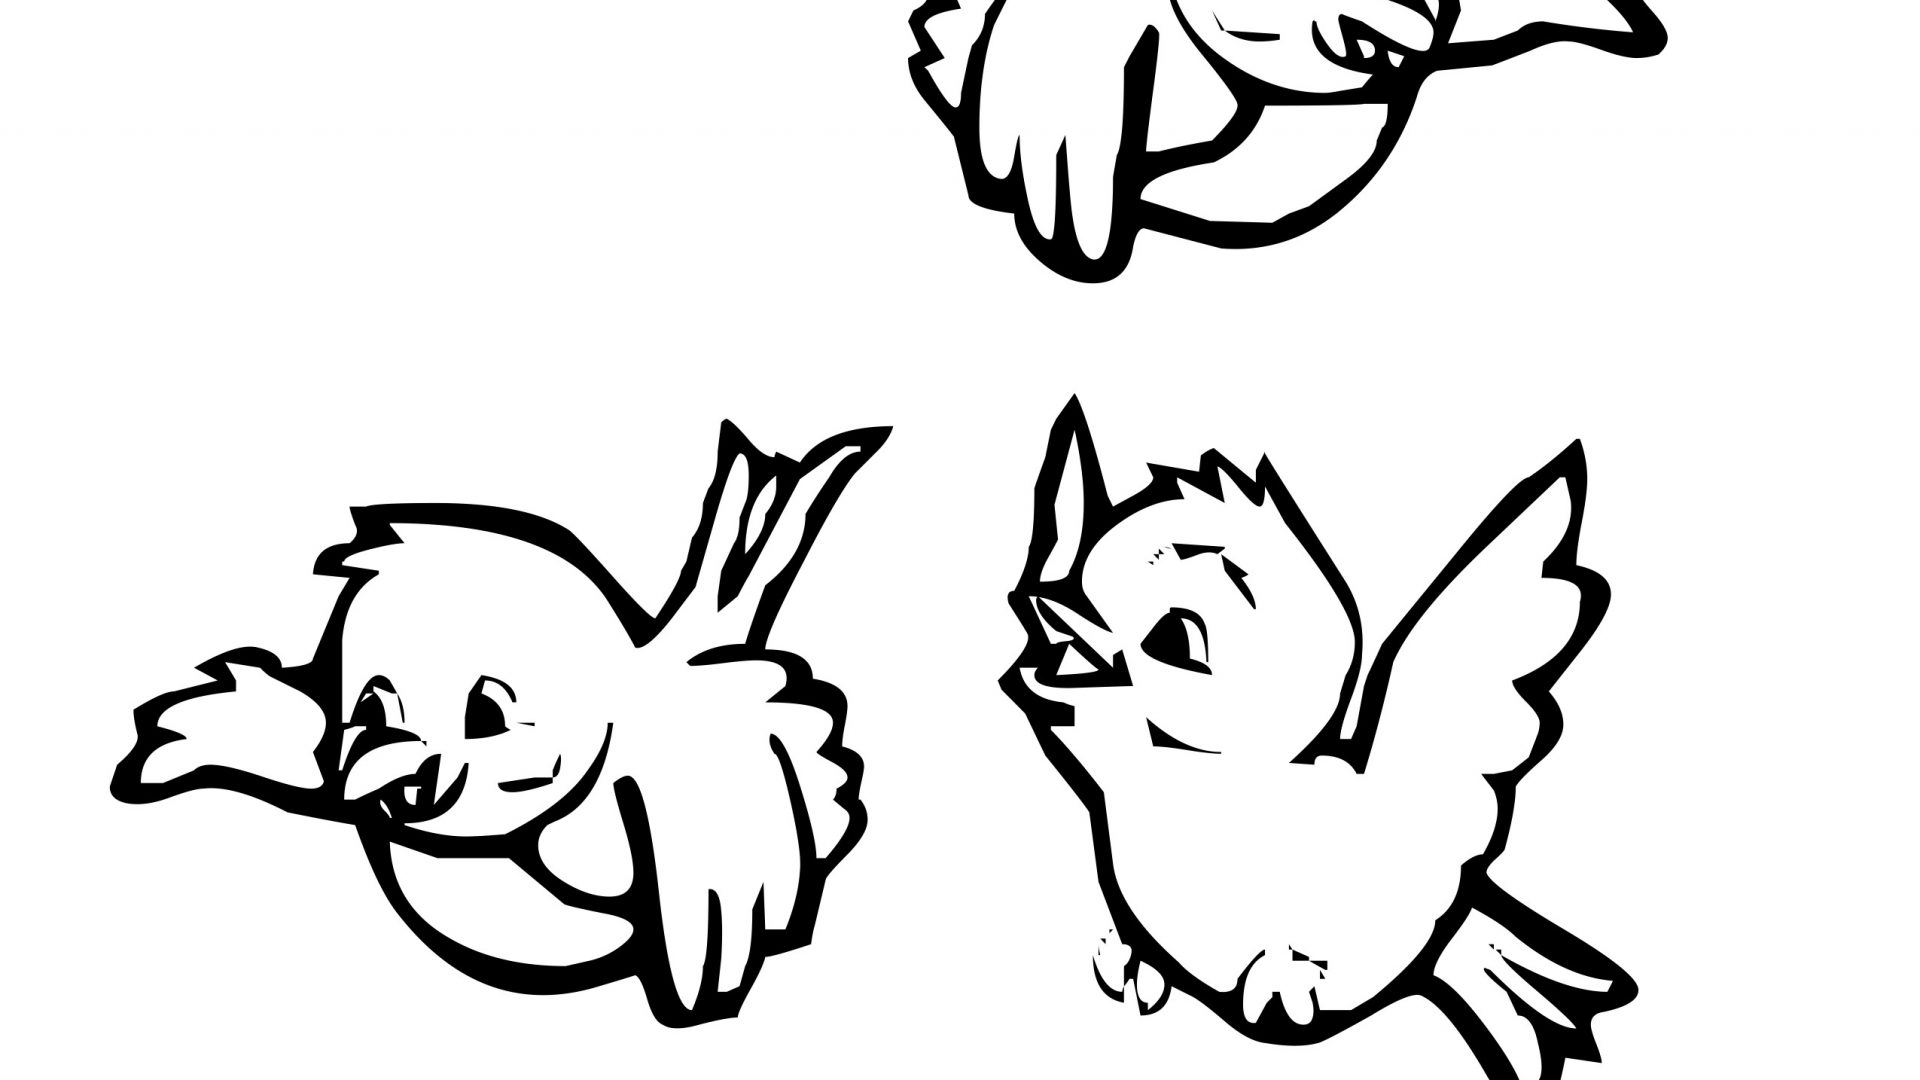 1920x1080 Drawn Bird Coloring Page Pencil Black And White Printable Of Birds